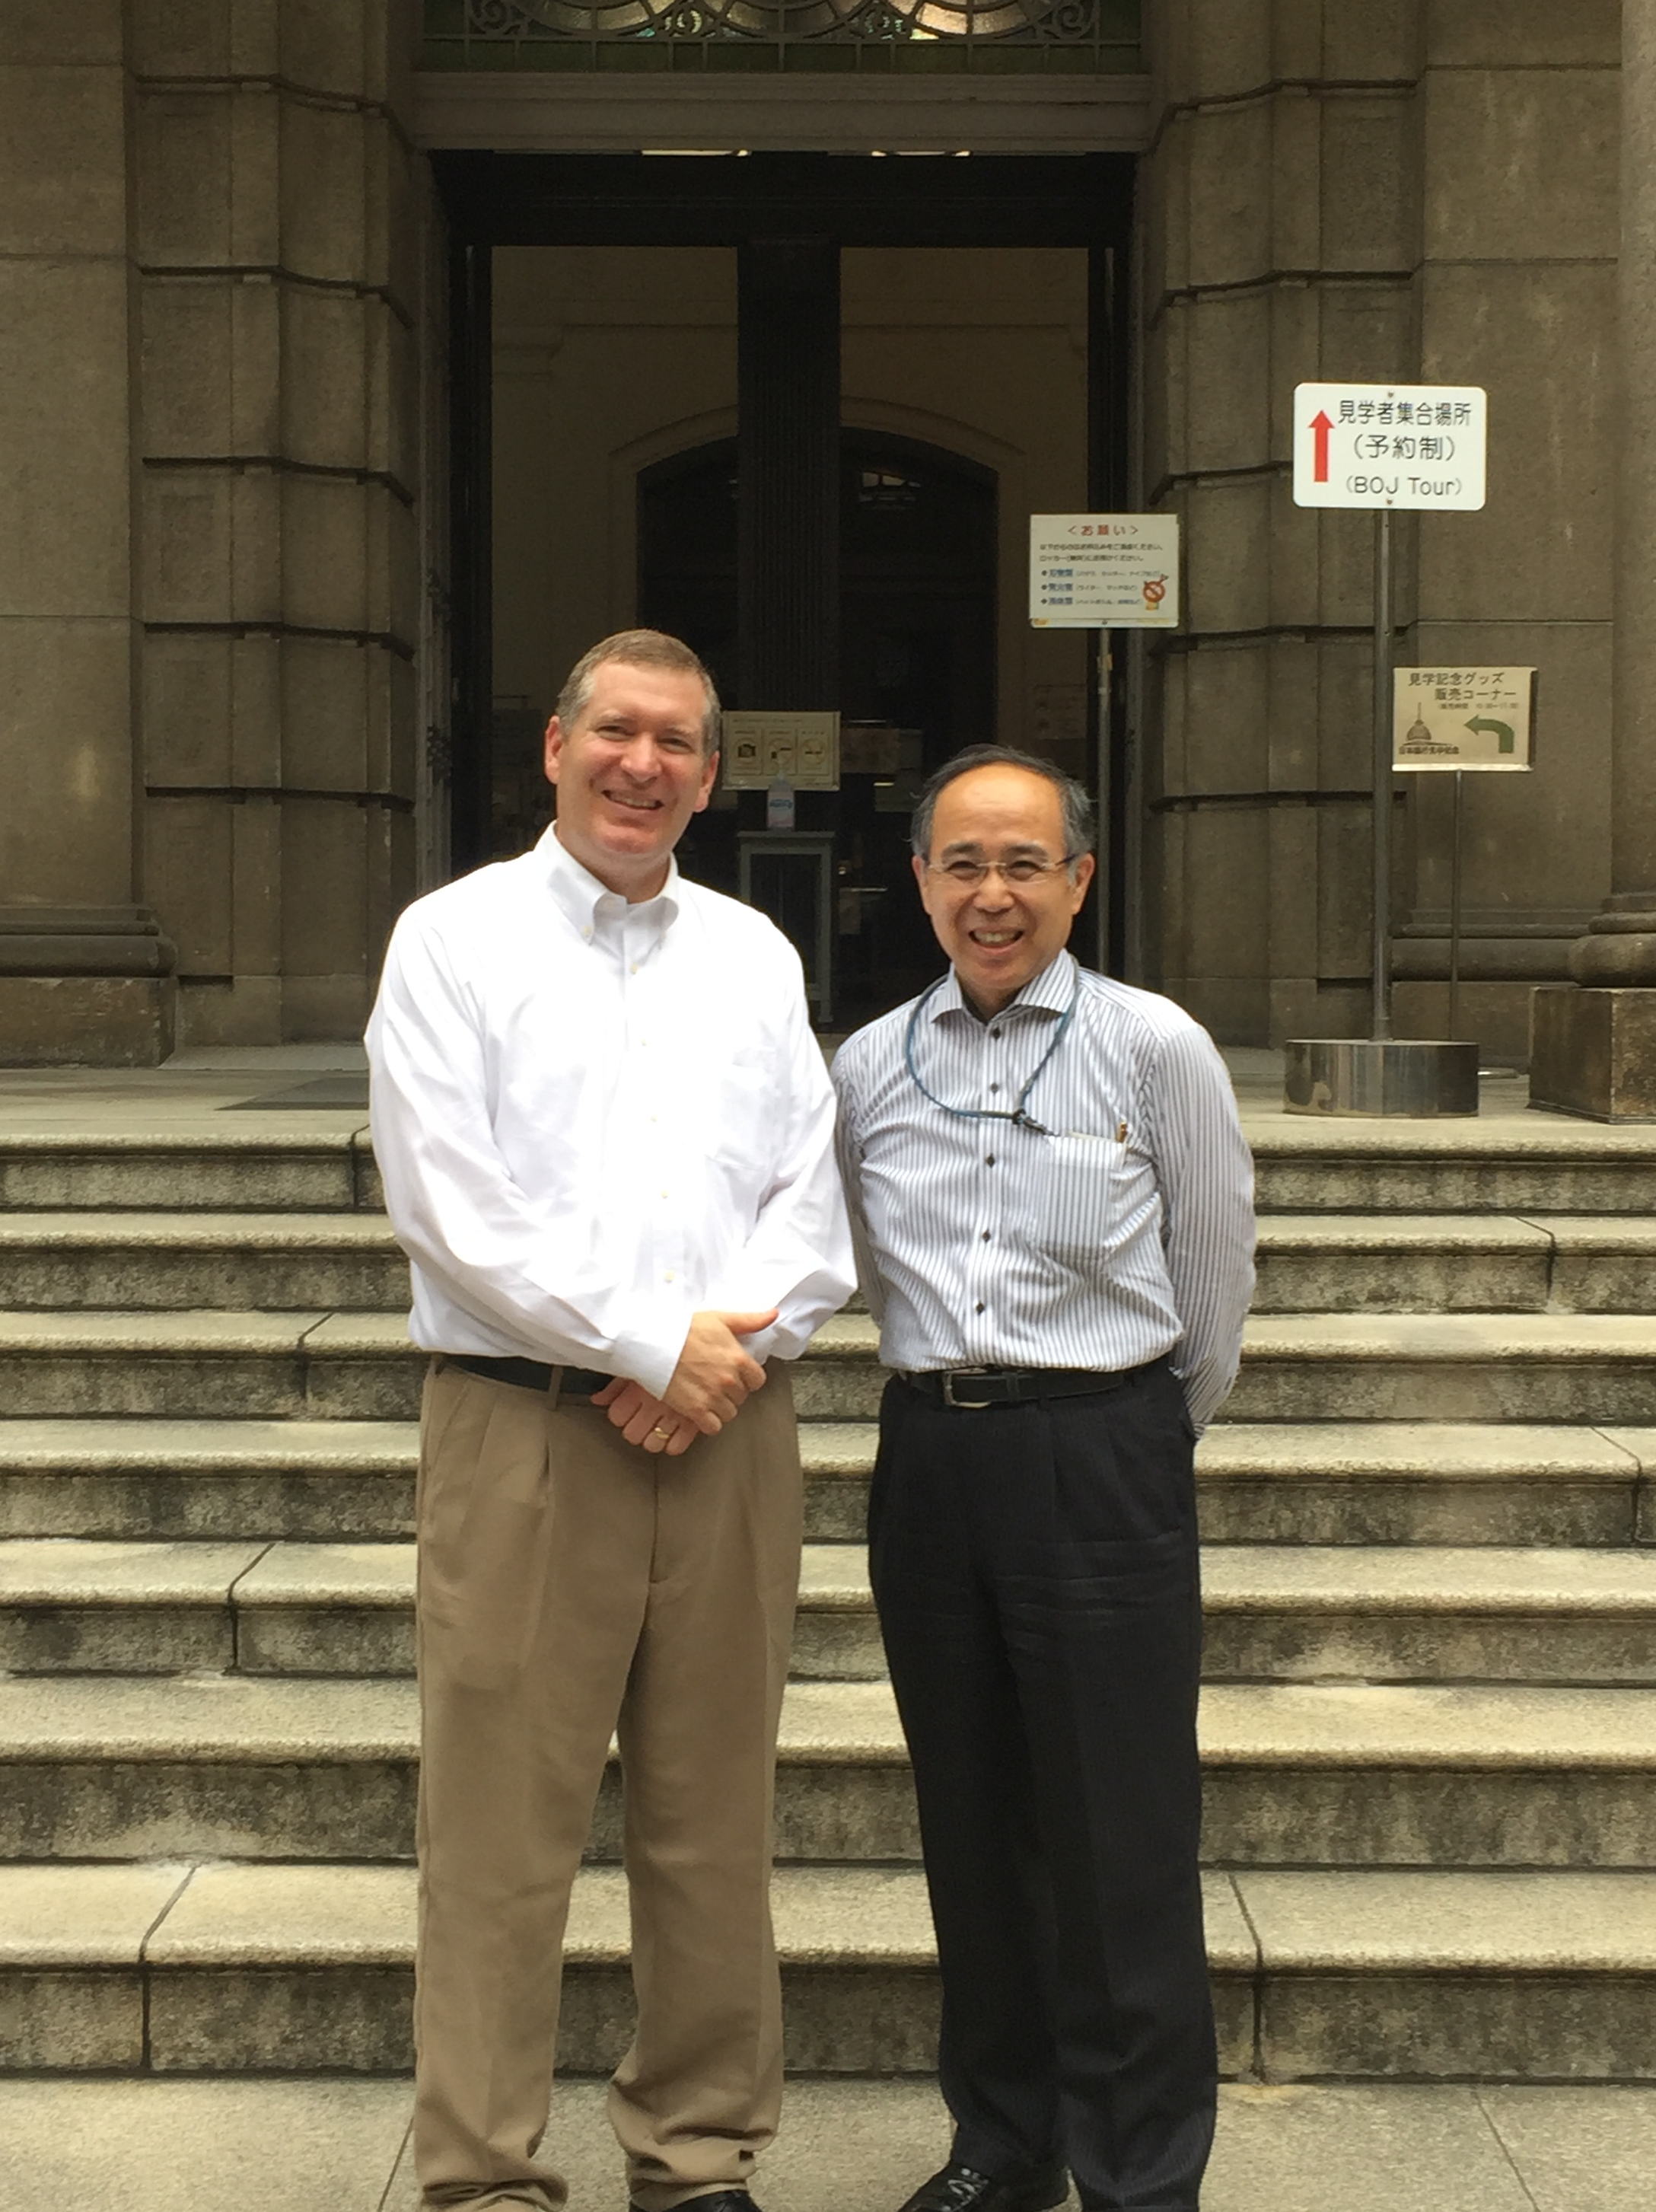 John Lunt with Shinji Isaki in front of the Bank of Japan